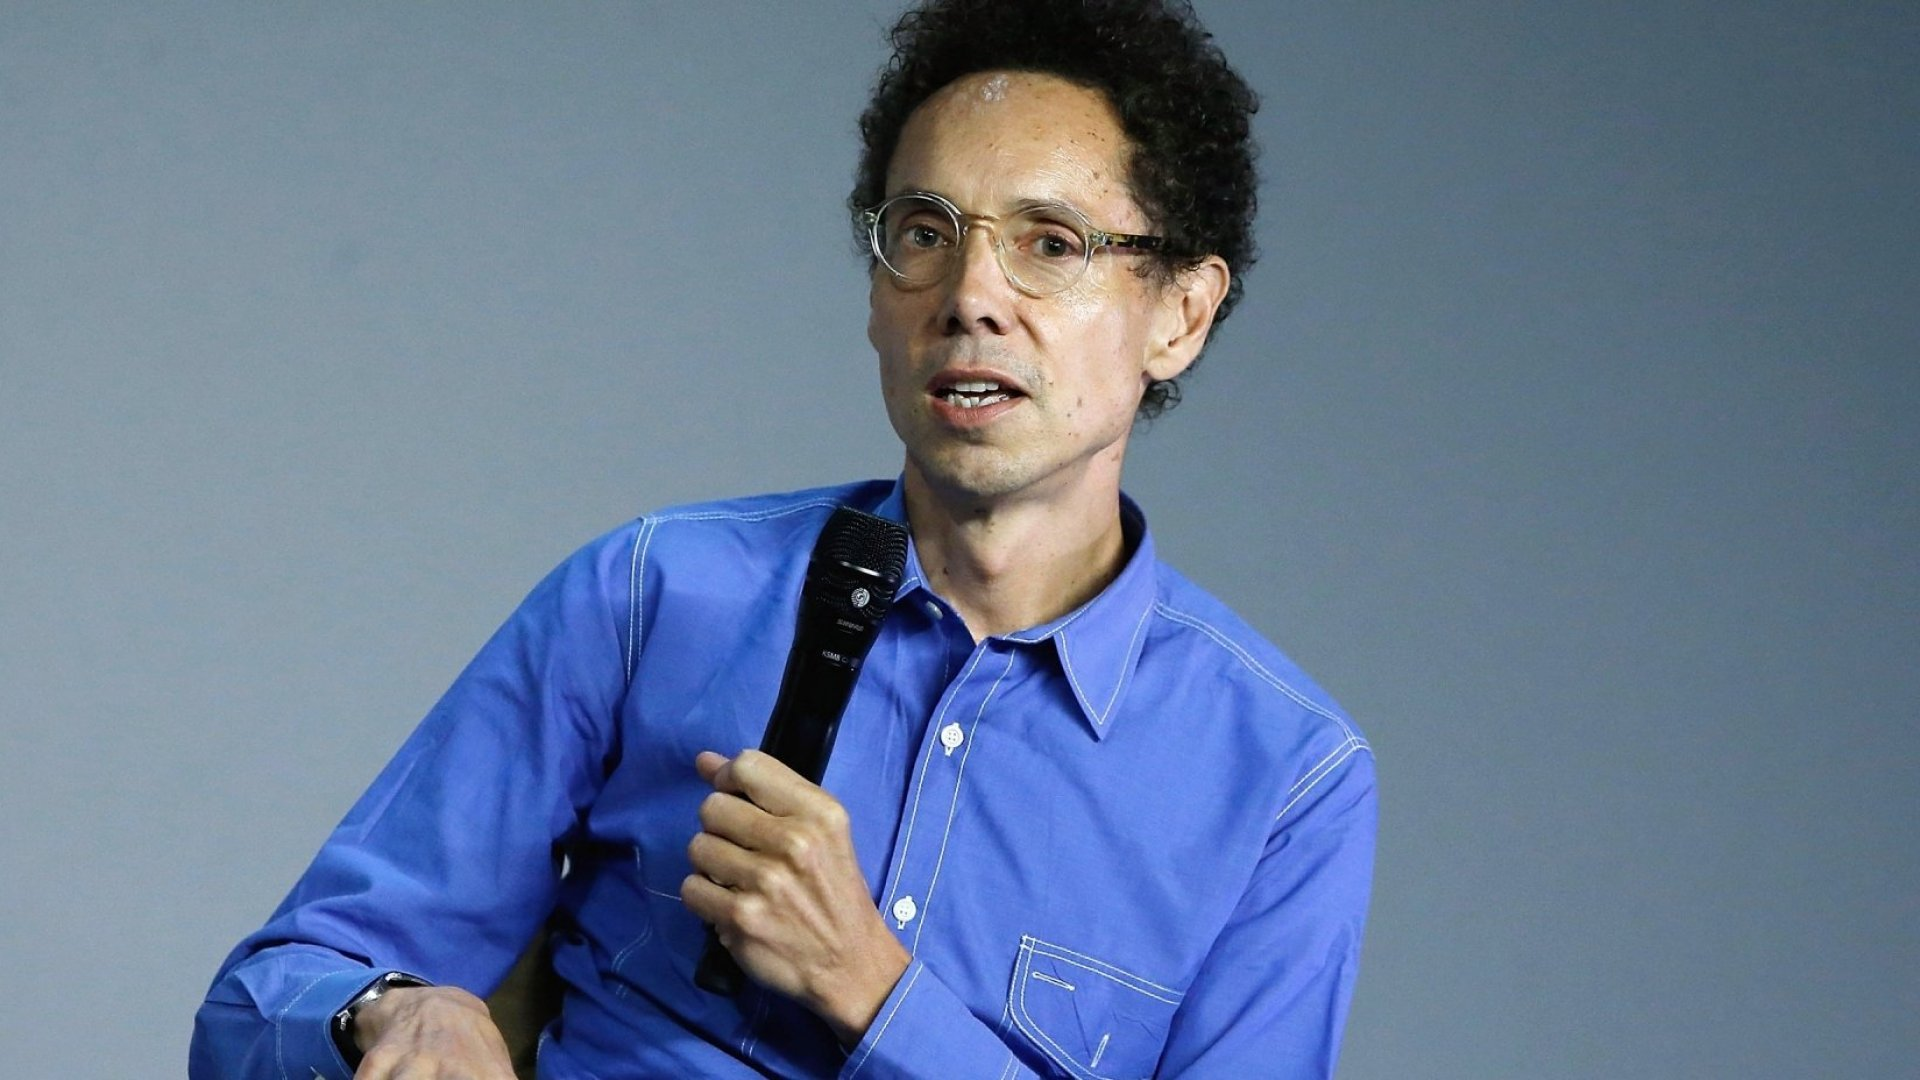 Malcolm Gladwell: More Data, More Mysteries